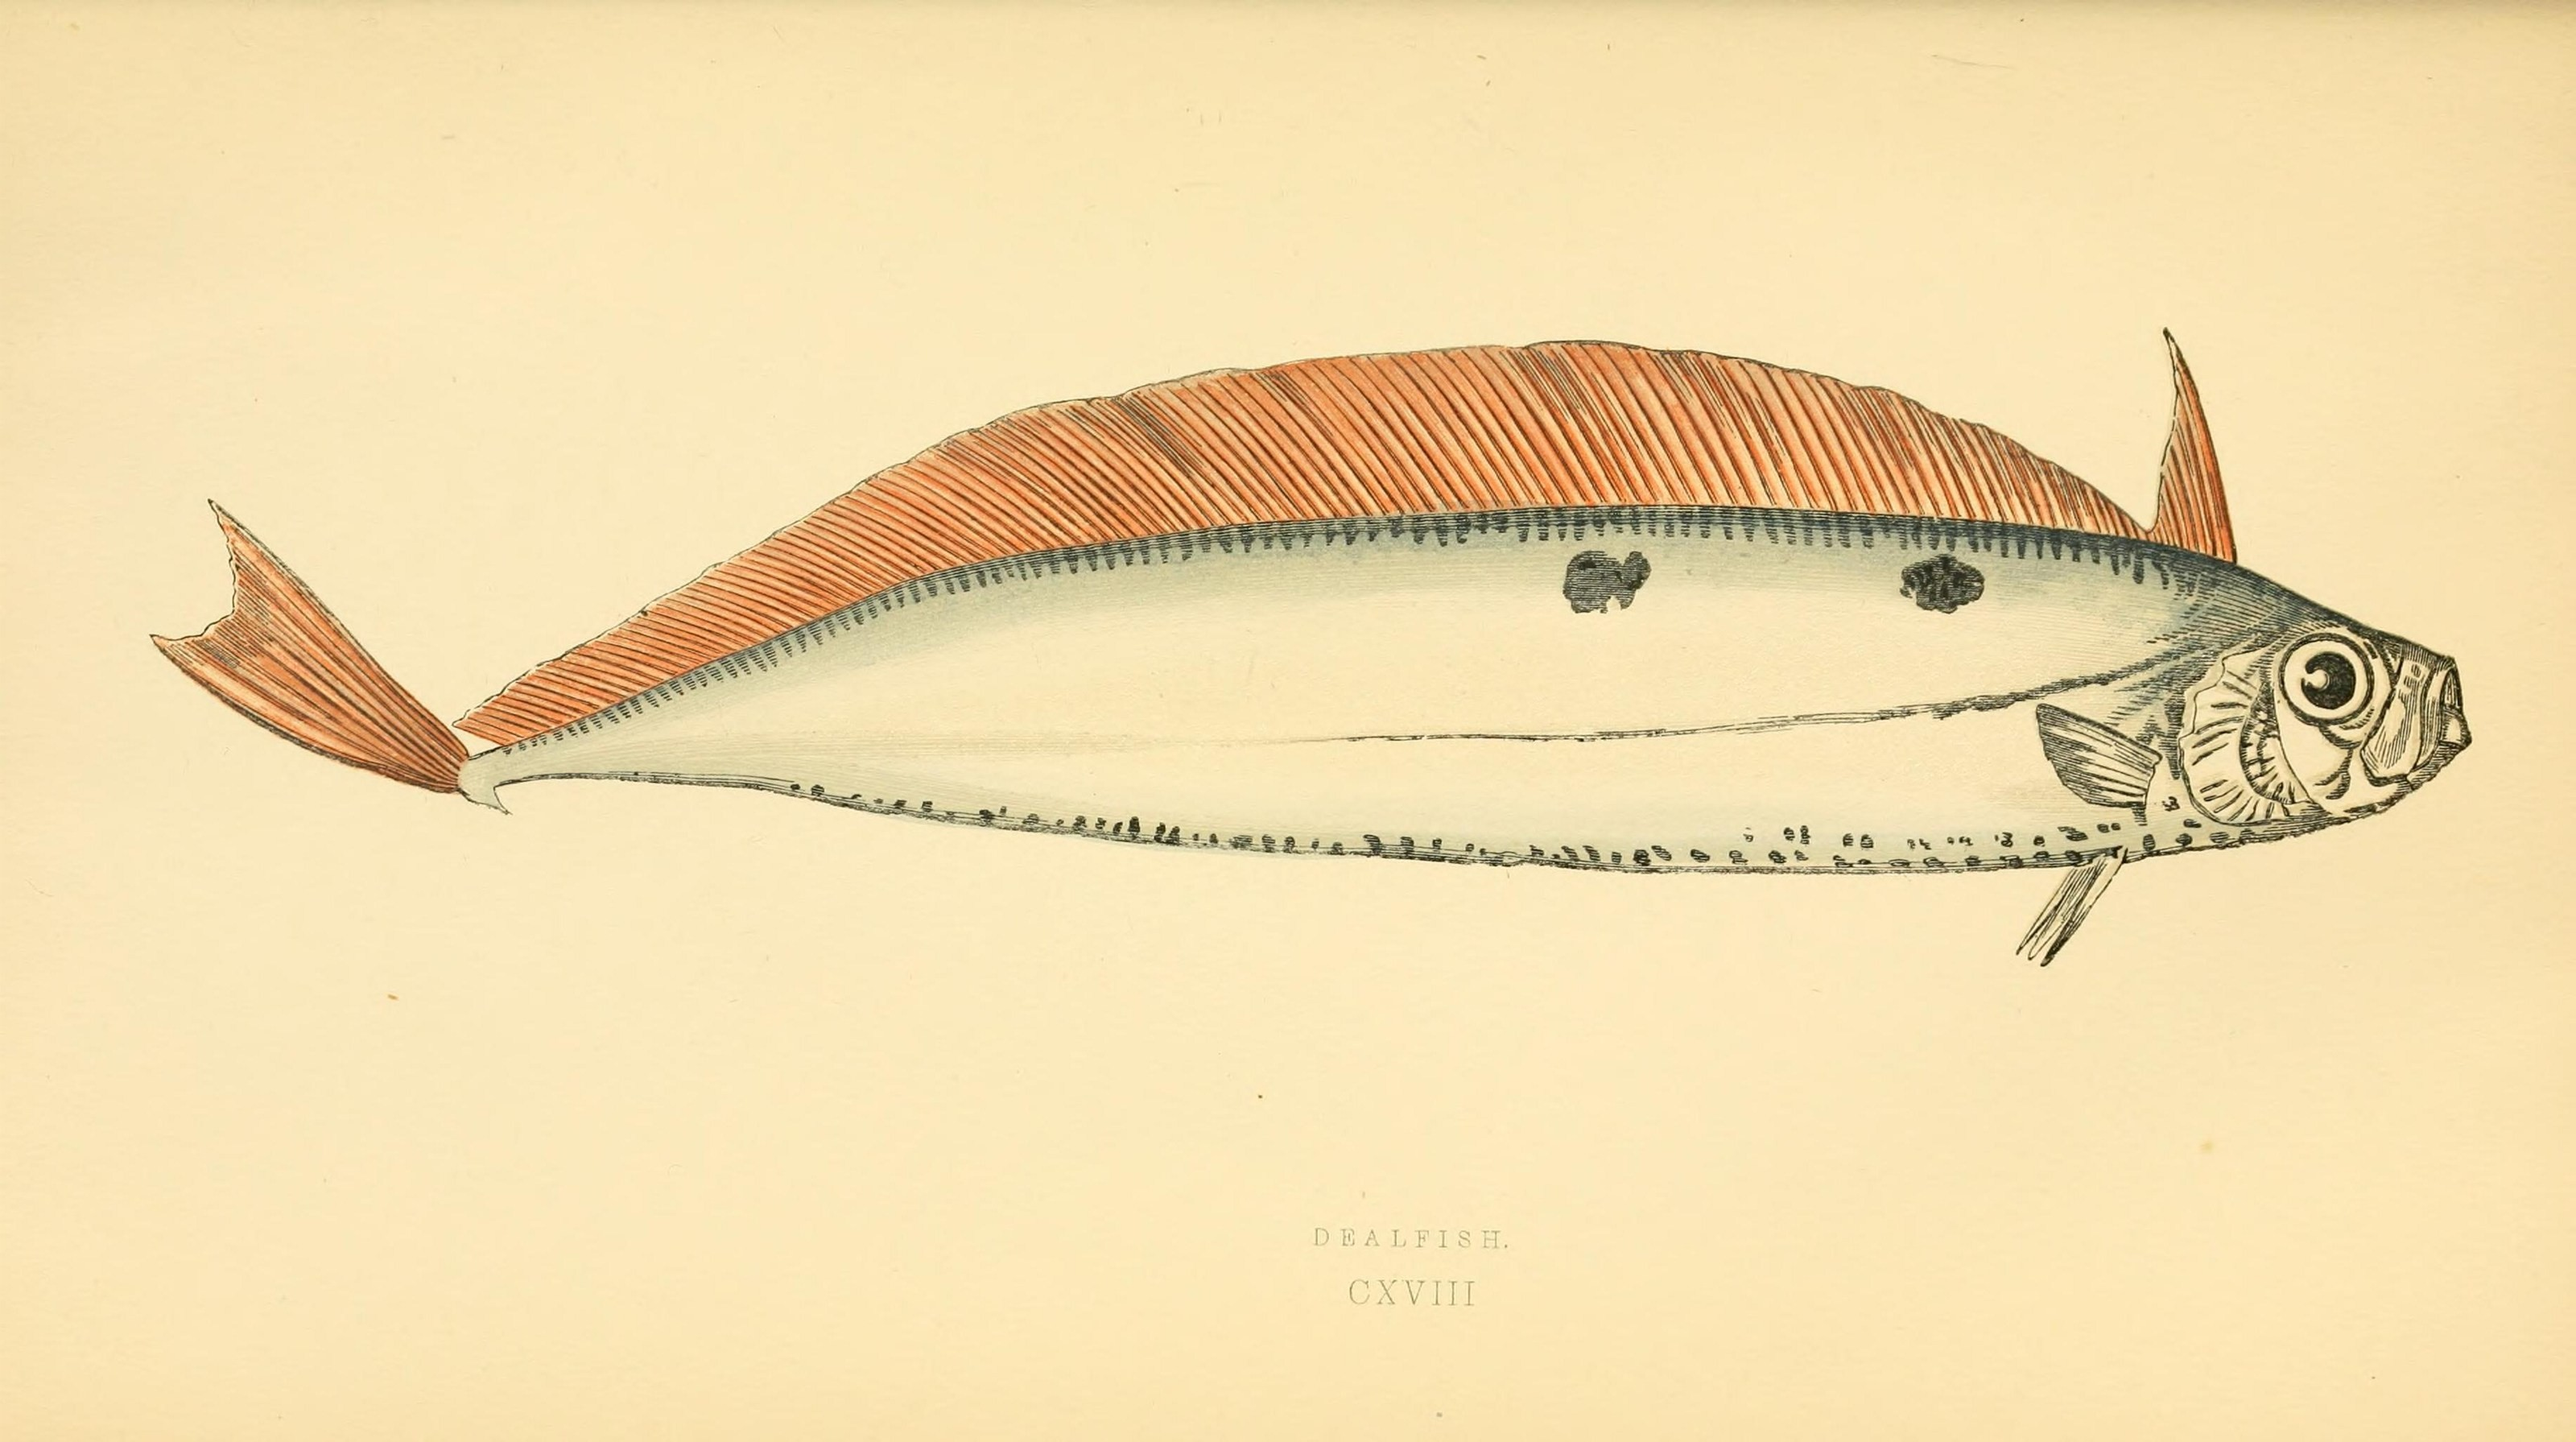 Image of Deal fish